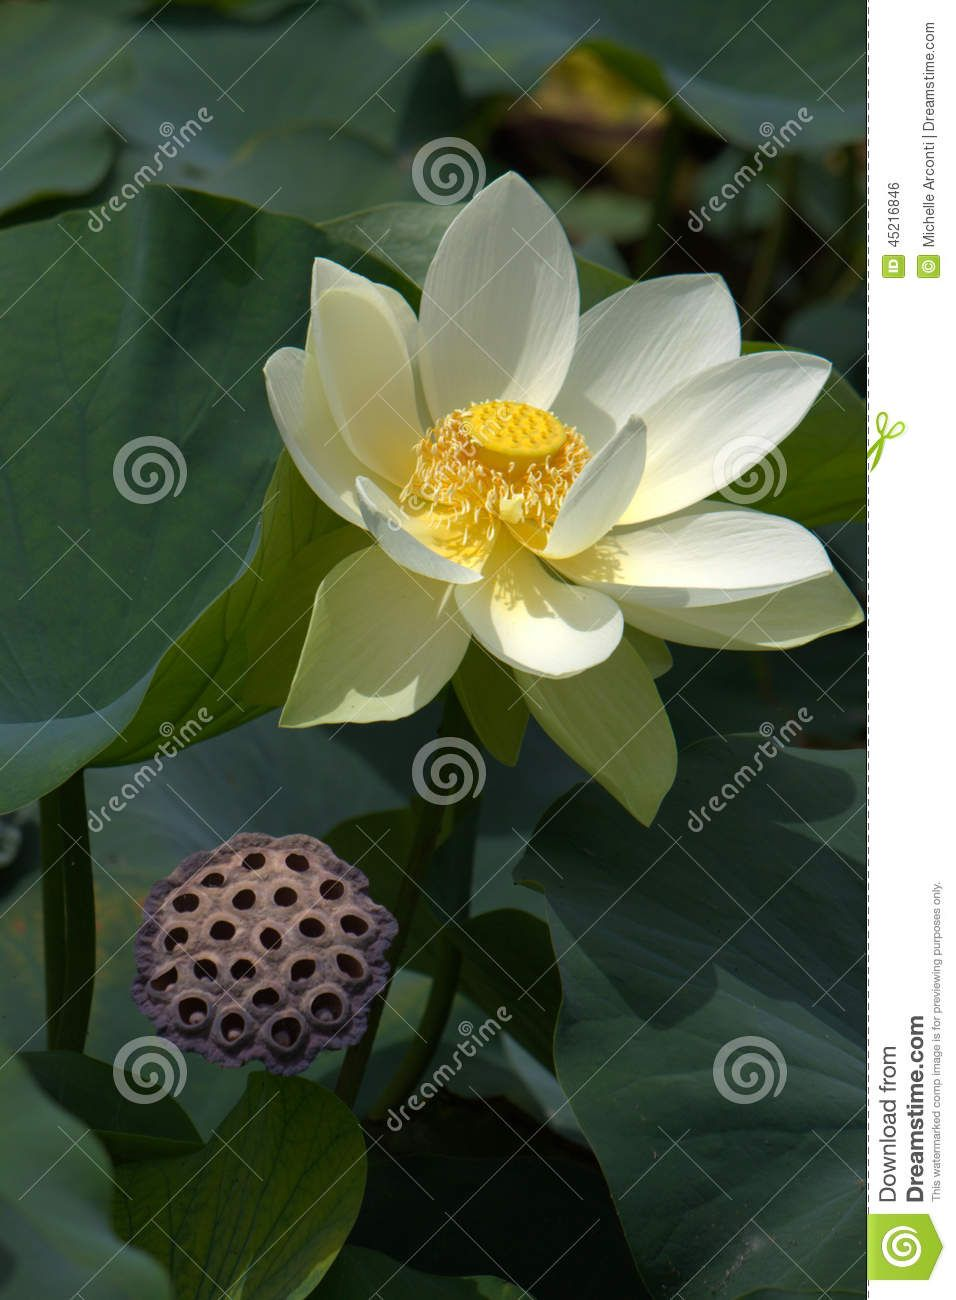 Lotus flower fully open in afternoon light book covers lotus flower fully open in afternoon light izmirmasajfo